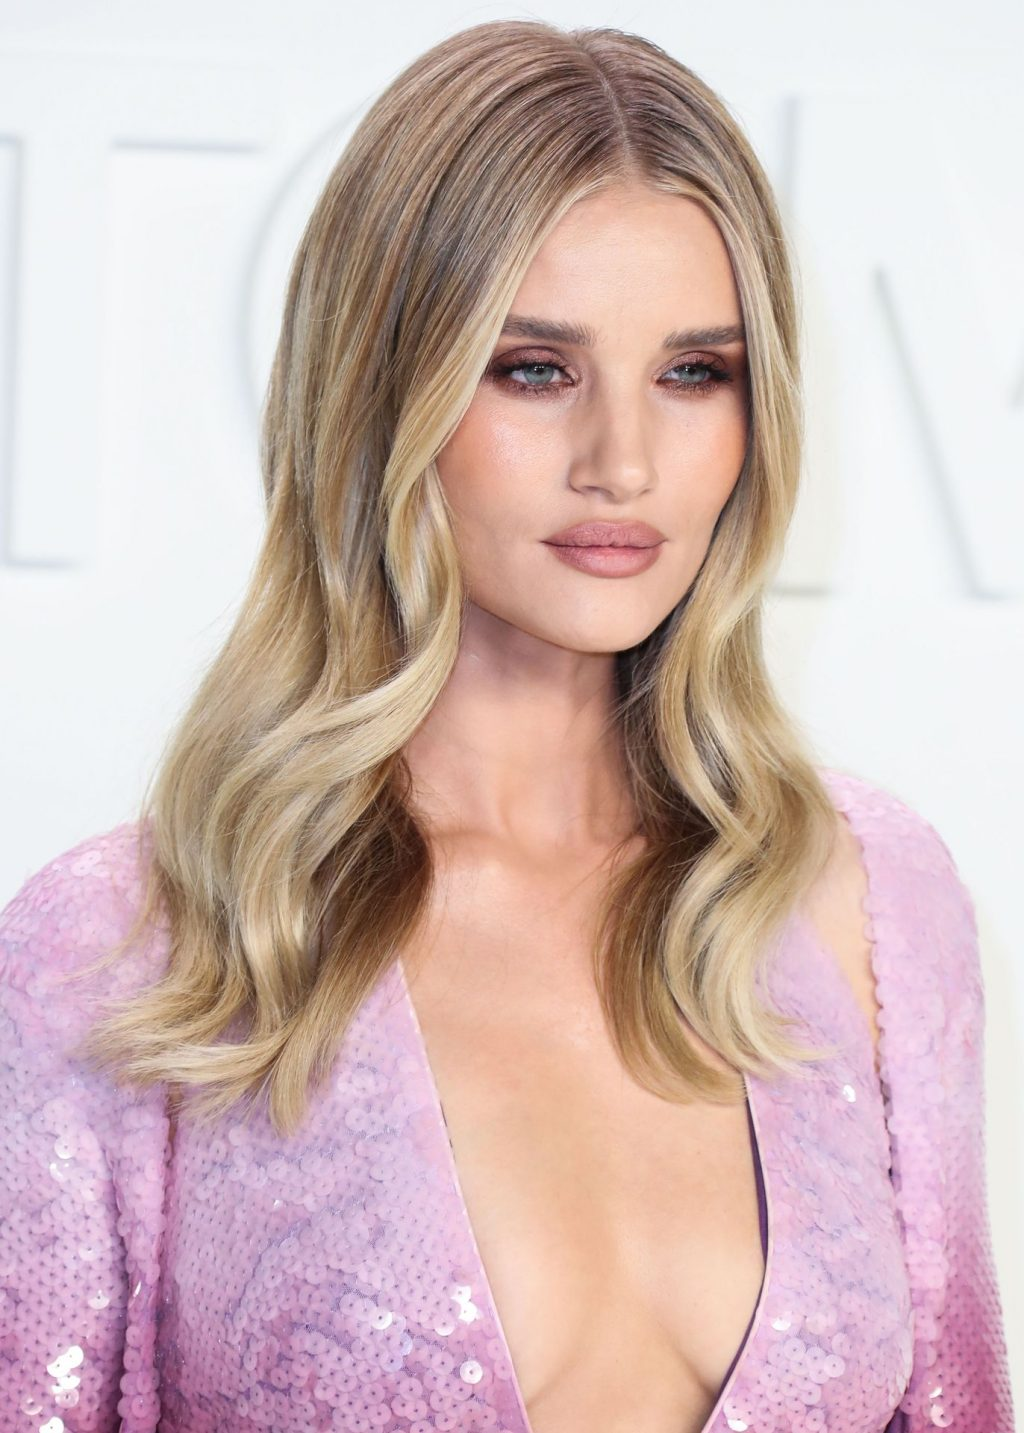 Rosie Huntington Whiteley Sexy The Fappening Blog 101 1024x1433 - Rosie Huntington-Whiteley Shows Her Cleavage at the Tom Ford Fashion Show (115 Photos)